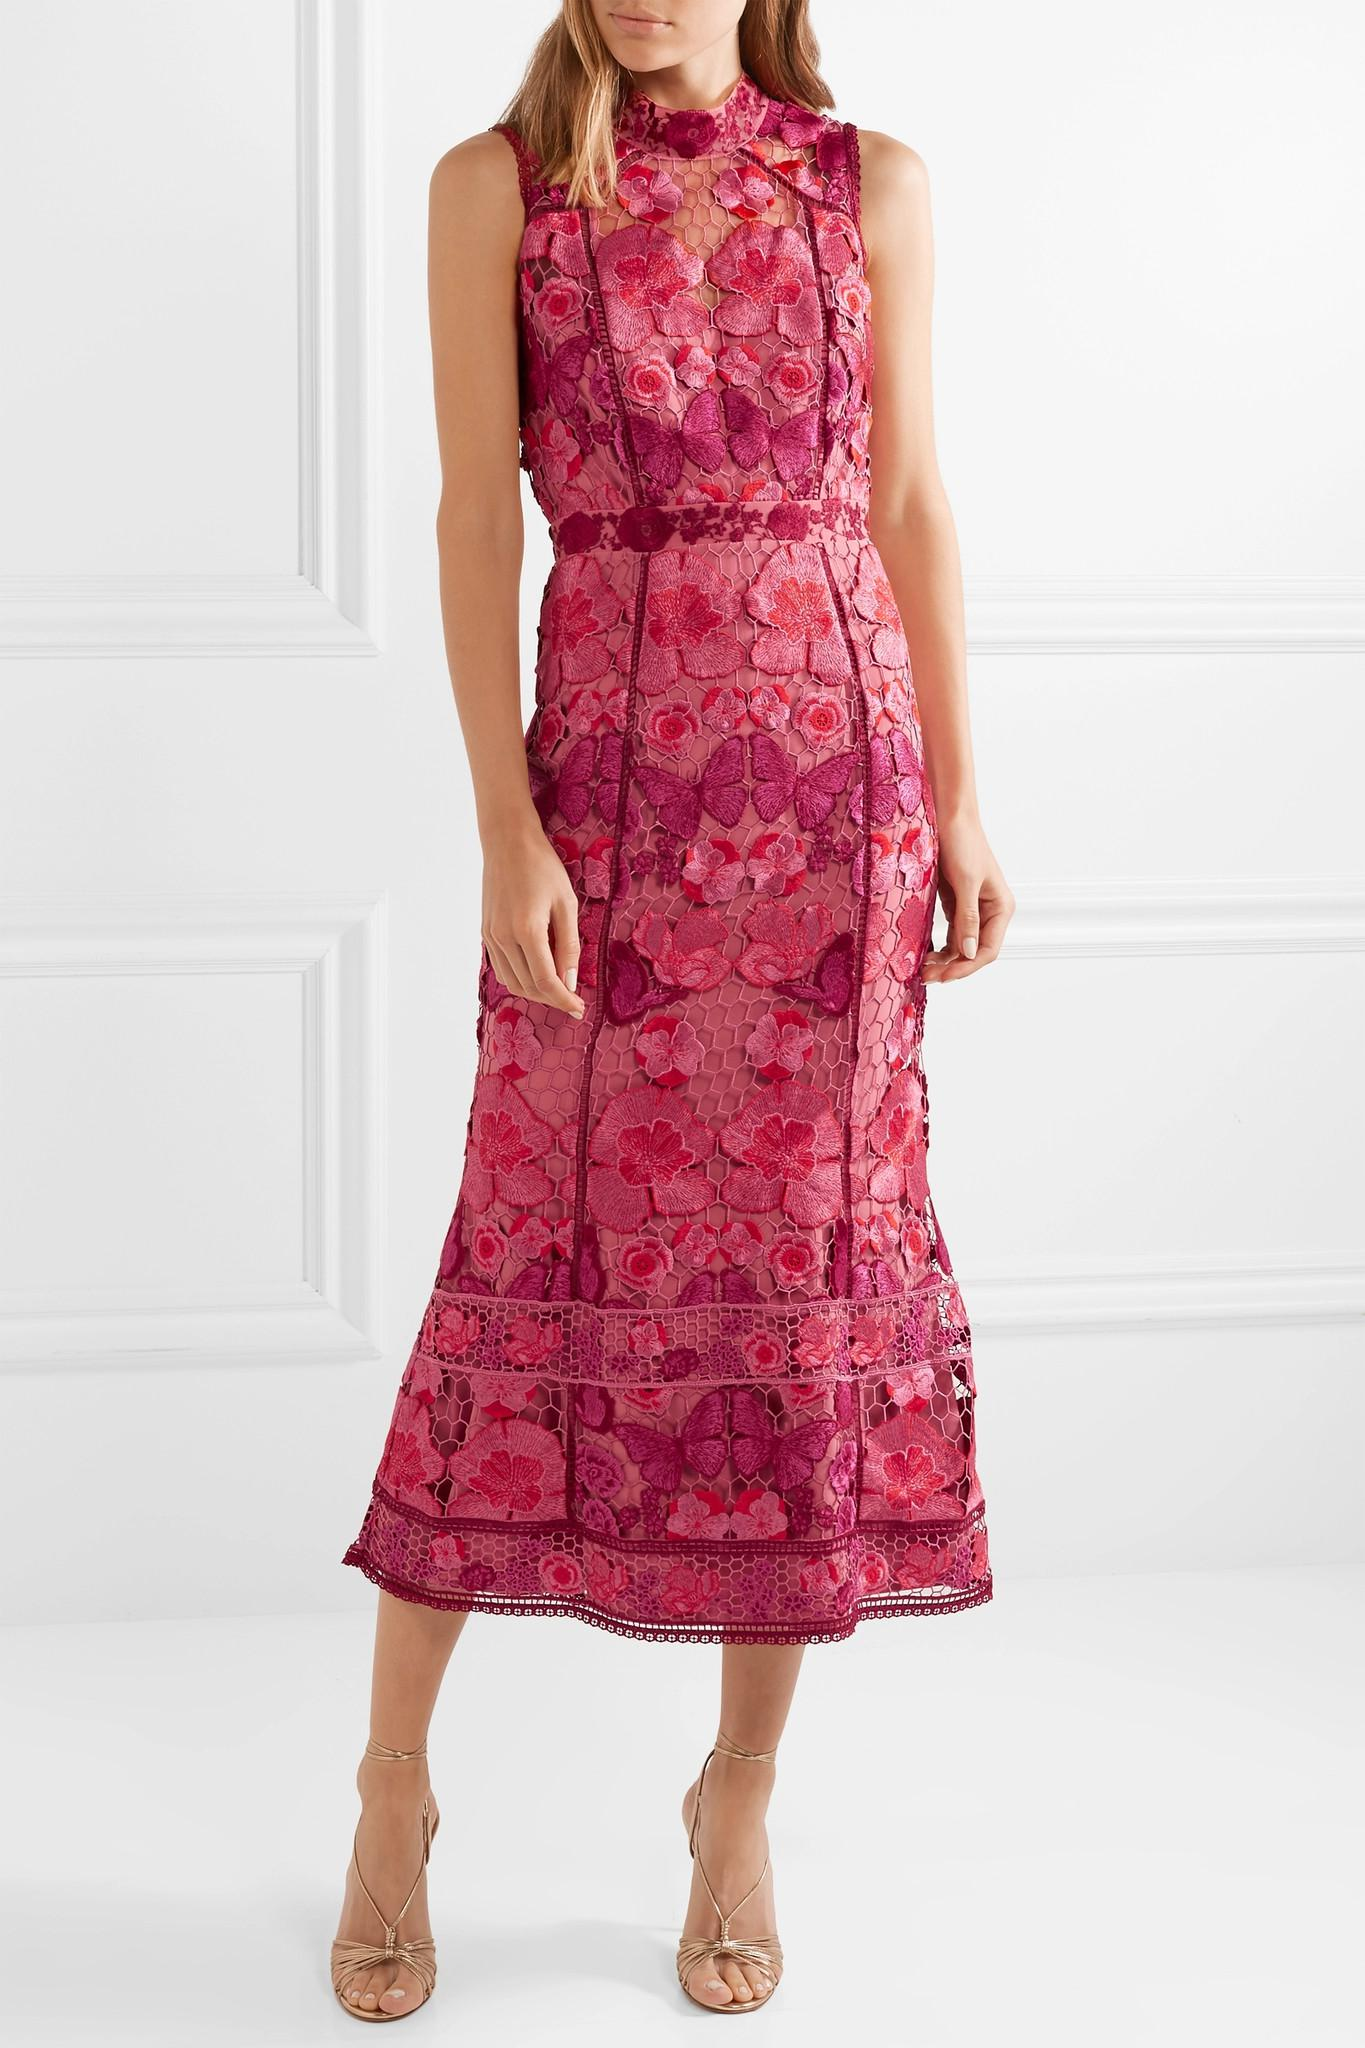 a8d9a1cf276c4 Lyst - Marchesa notte Embroidered Guipure Lace Midi Dress in Pink